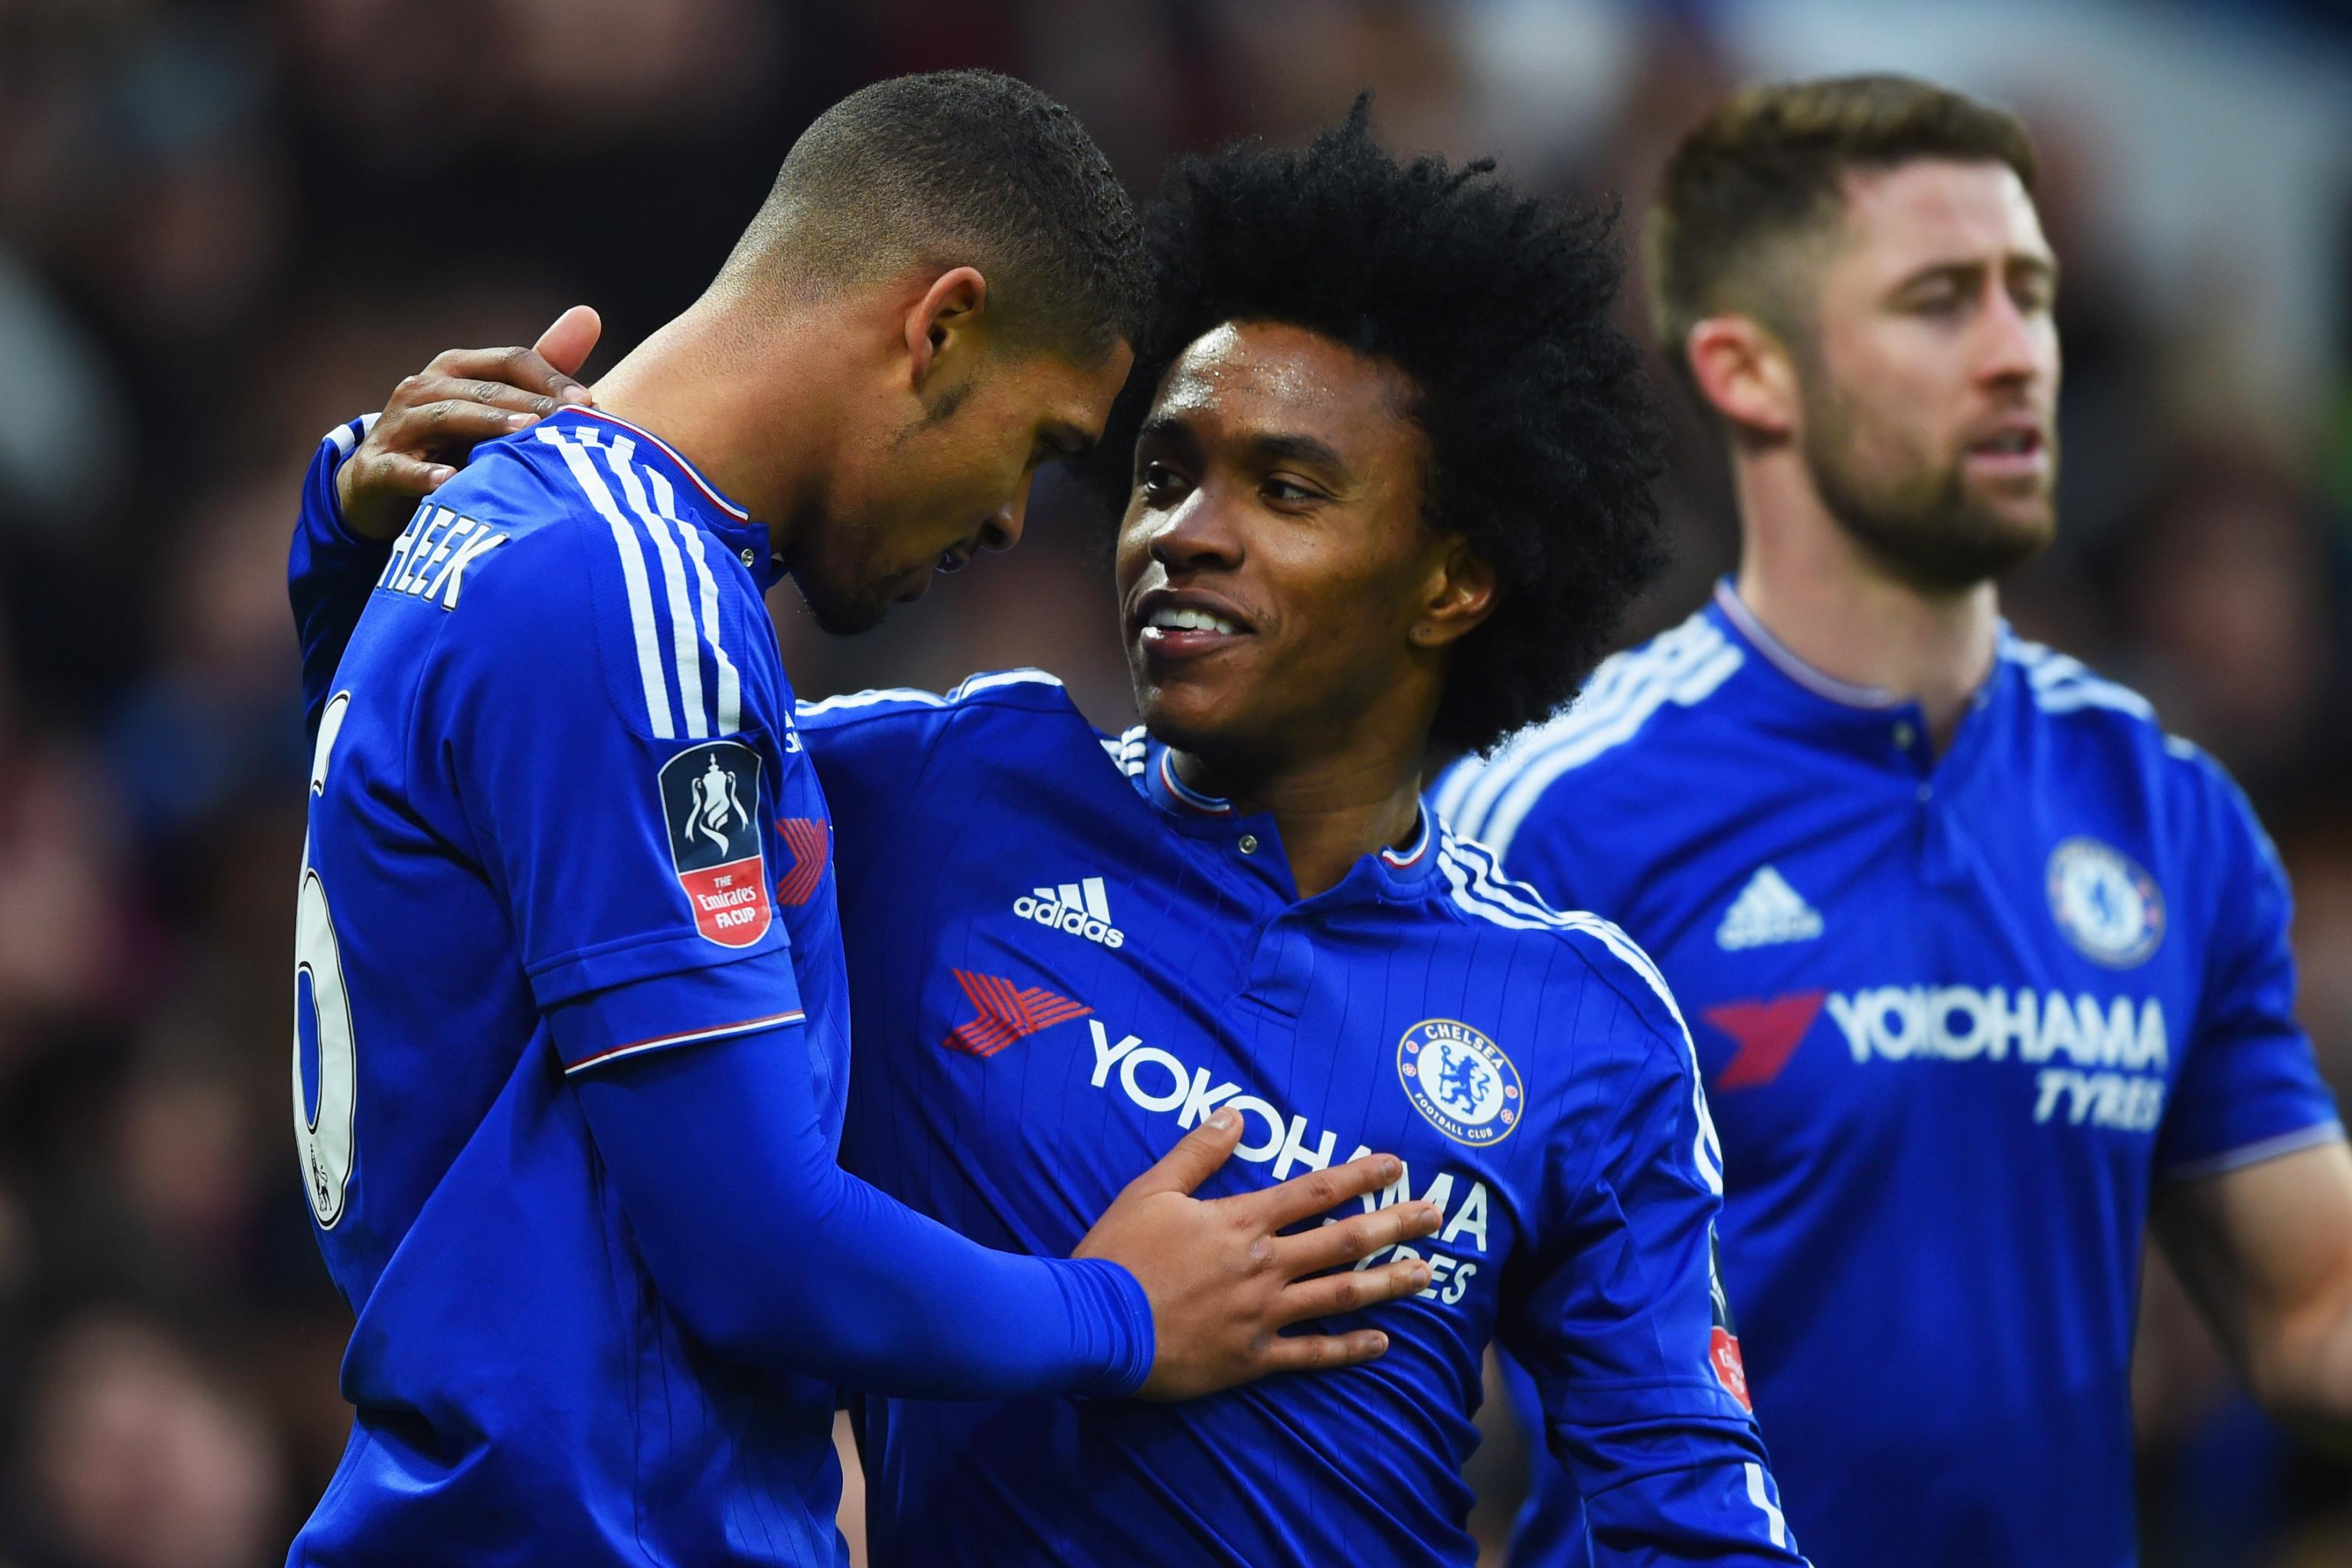 Chelsea Vs West Brom Team News Predicted Lineups Live Stream Tv Info Bleacher Report Latest News Videos And Highlights